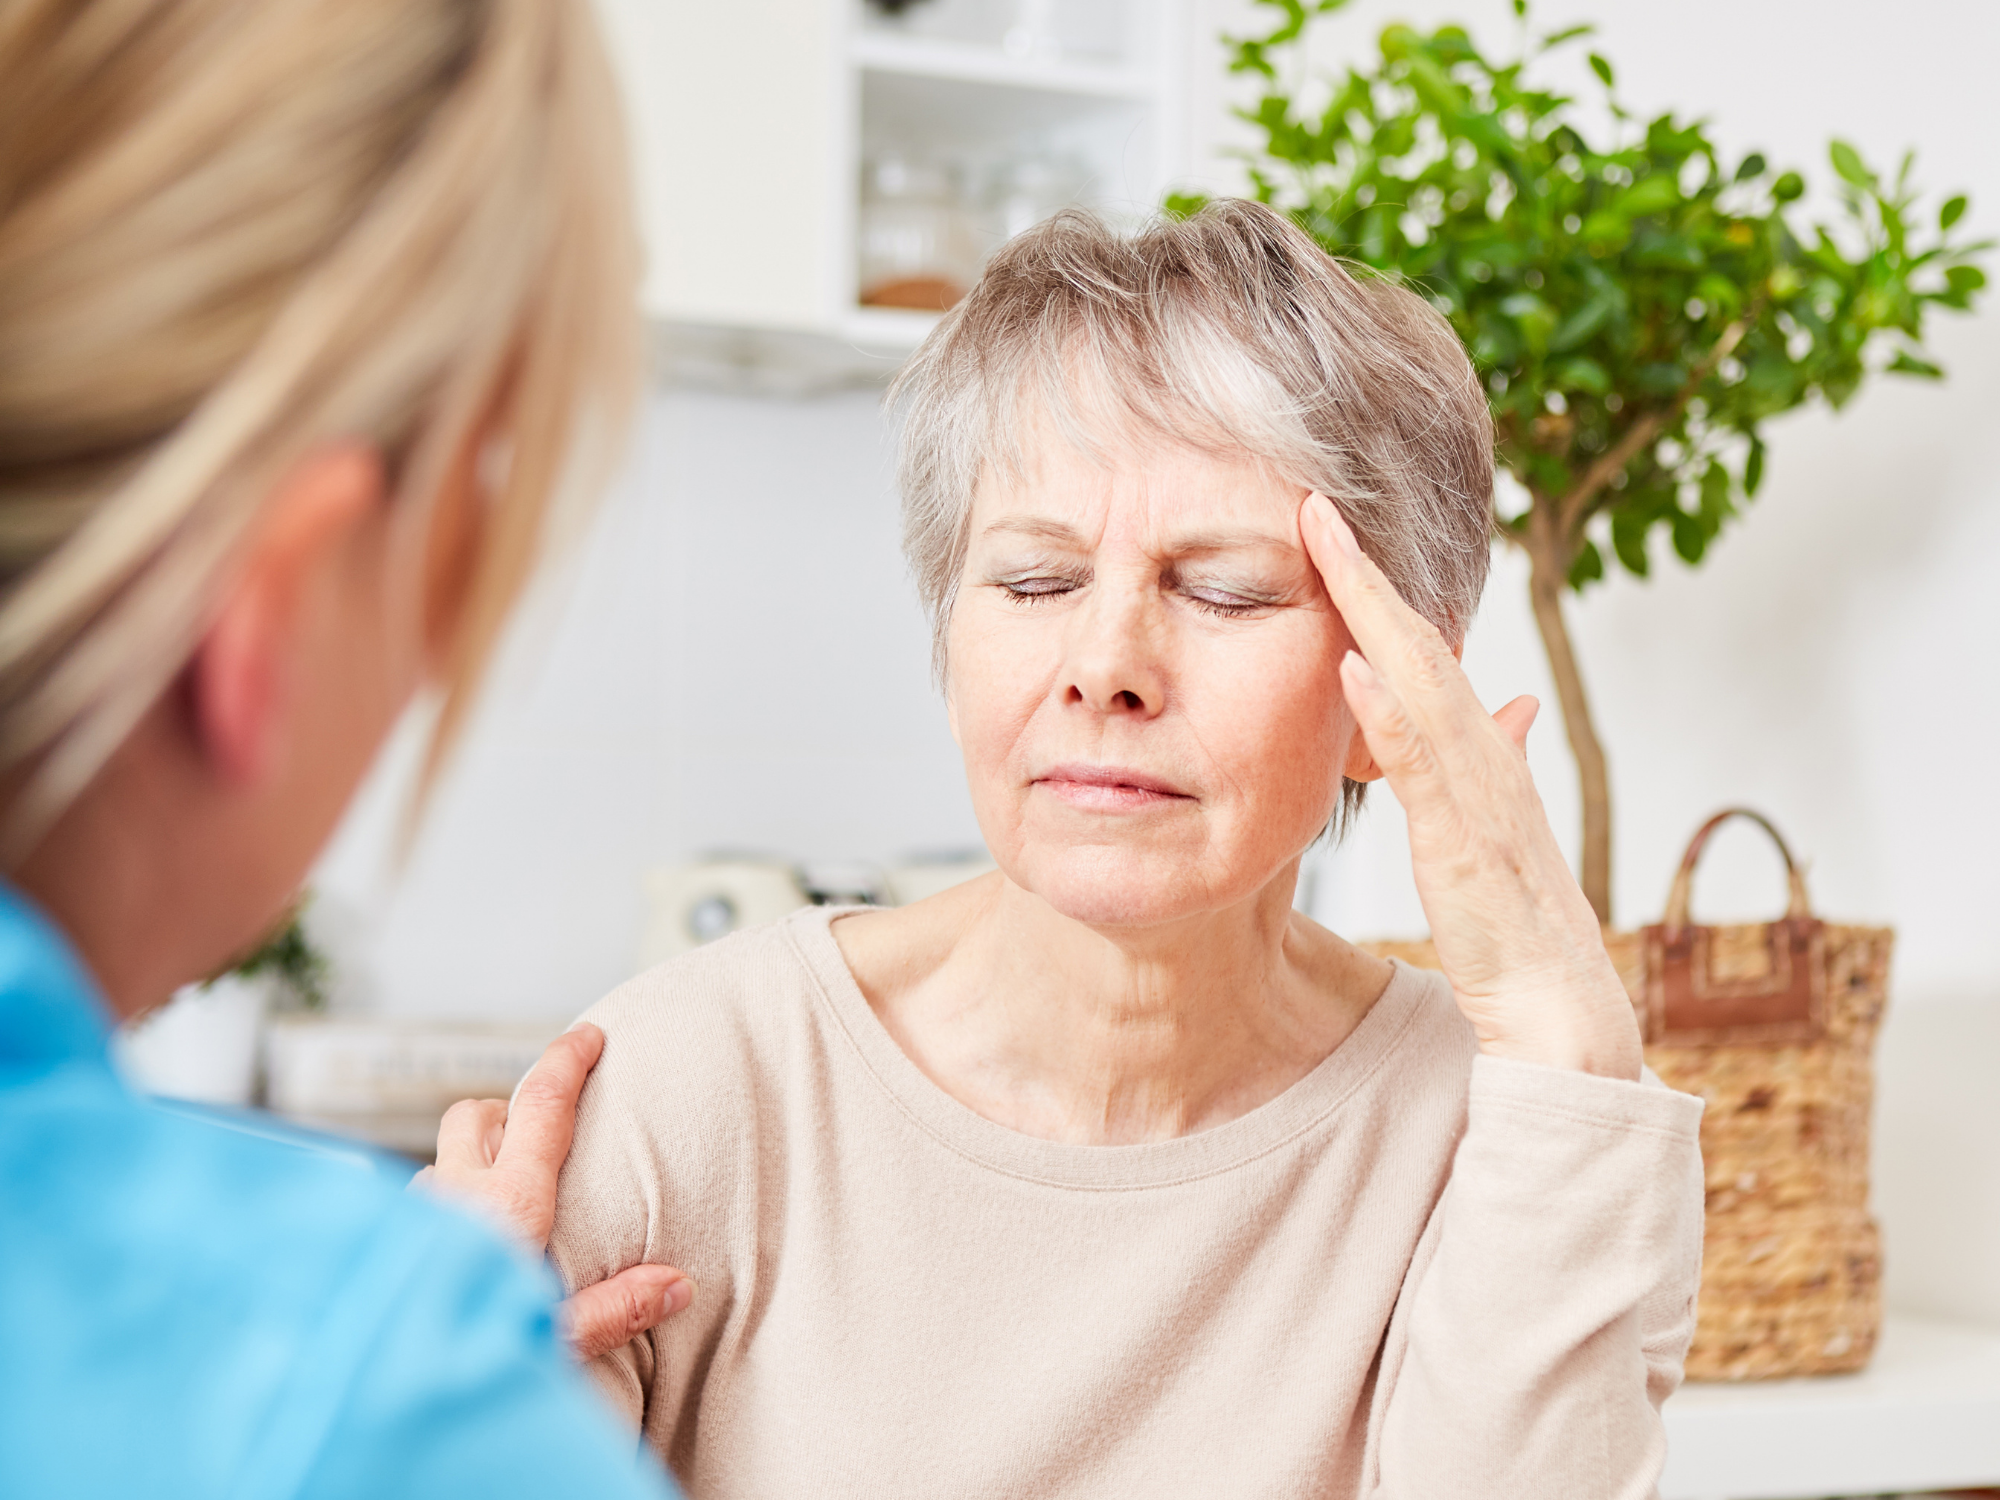 Could your eyes show signs of Alzheimer's disease?